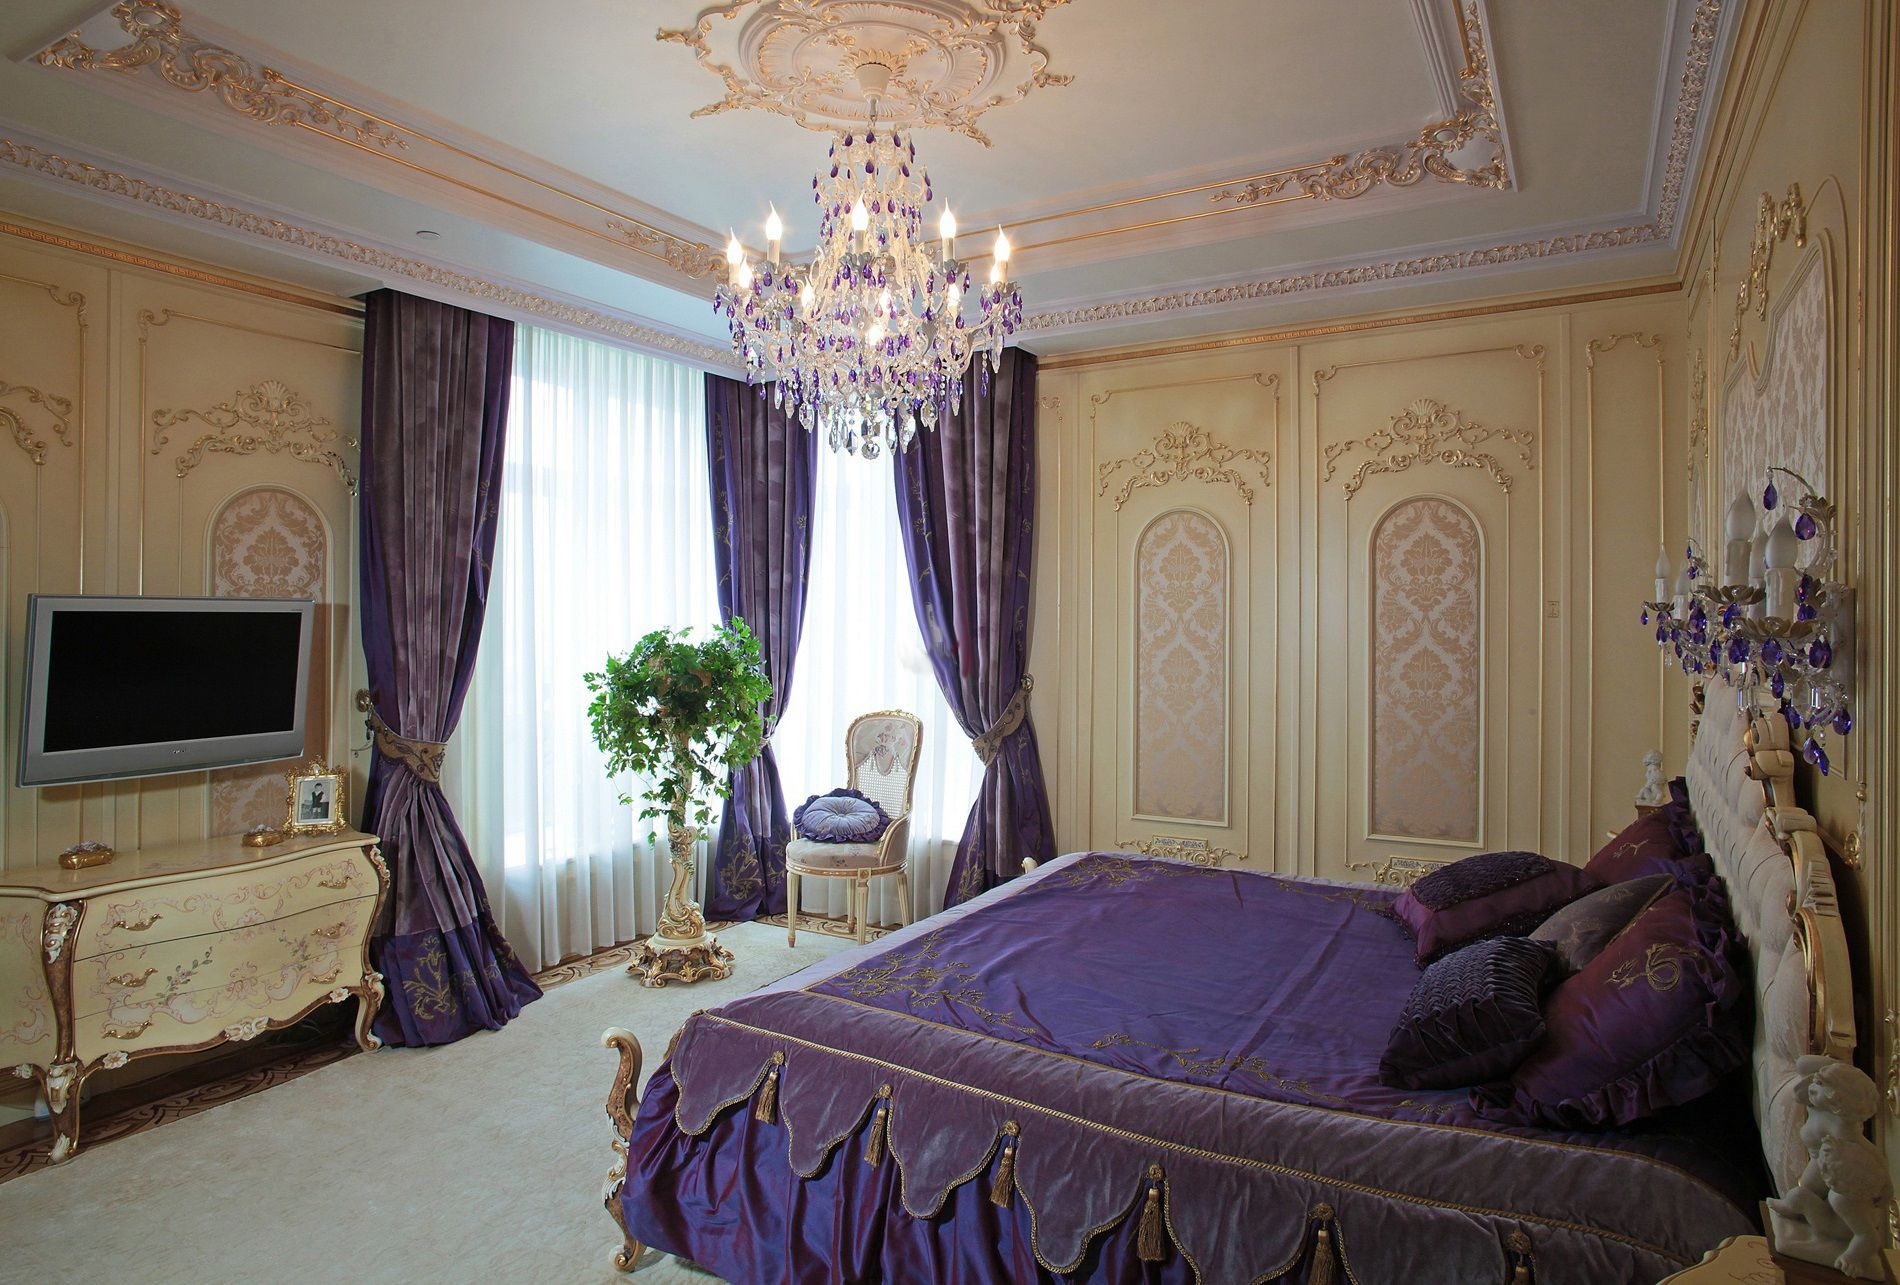 Neo baroque furniture by paolo lucchetta modern furniture design - Baroque Purple Colored Bedroom With Gilded Ceiling Stucco And Crystal Chandelier Baroque Interior Design Style